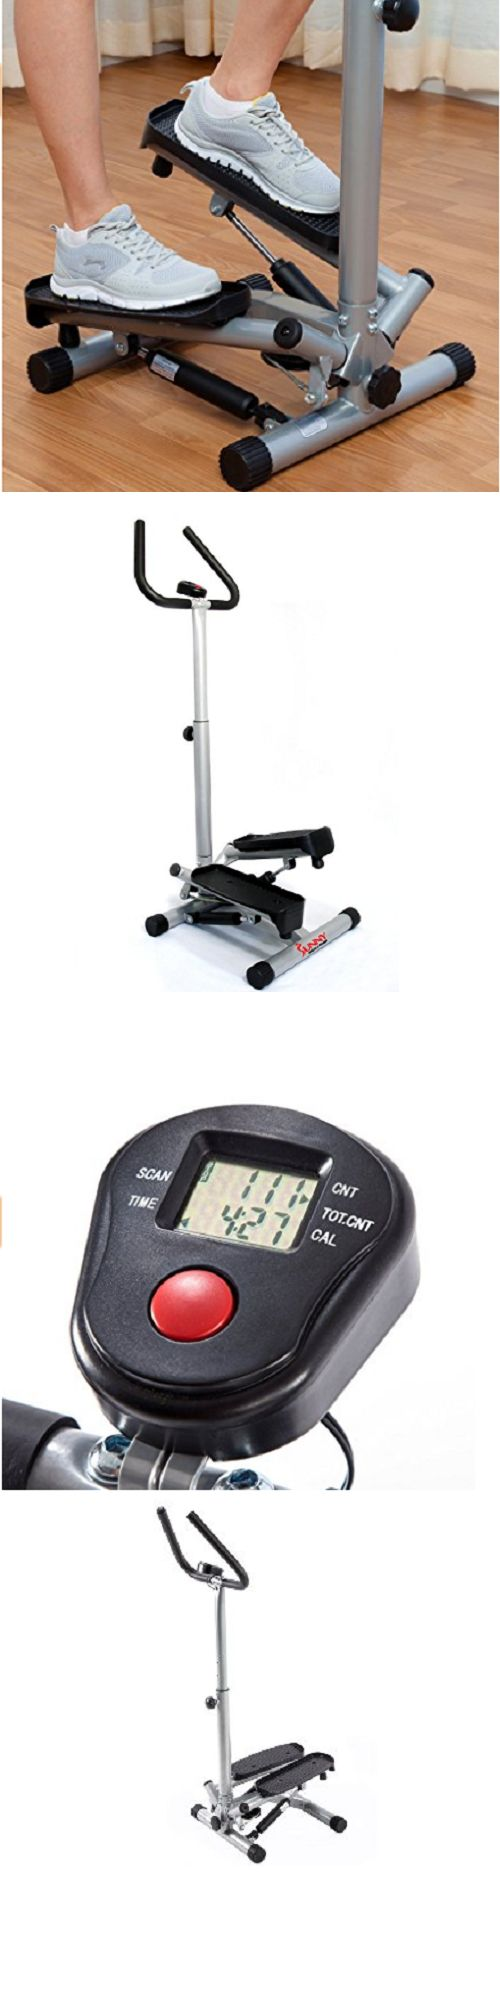 Stair Machines and Steppers 28062: Home Gym Exercise Machine Butt Thigh Toner Workout Fitness Equipment Adjustable -> BUY IT NOW ONLY: $79.95 on eBay!